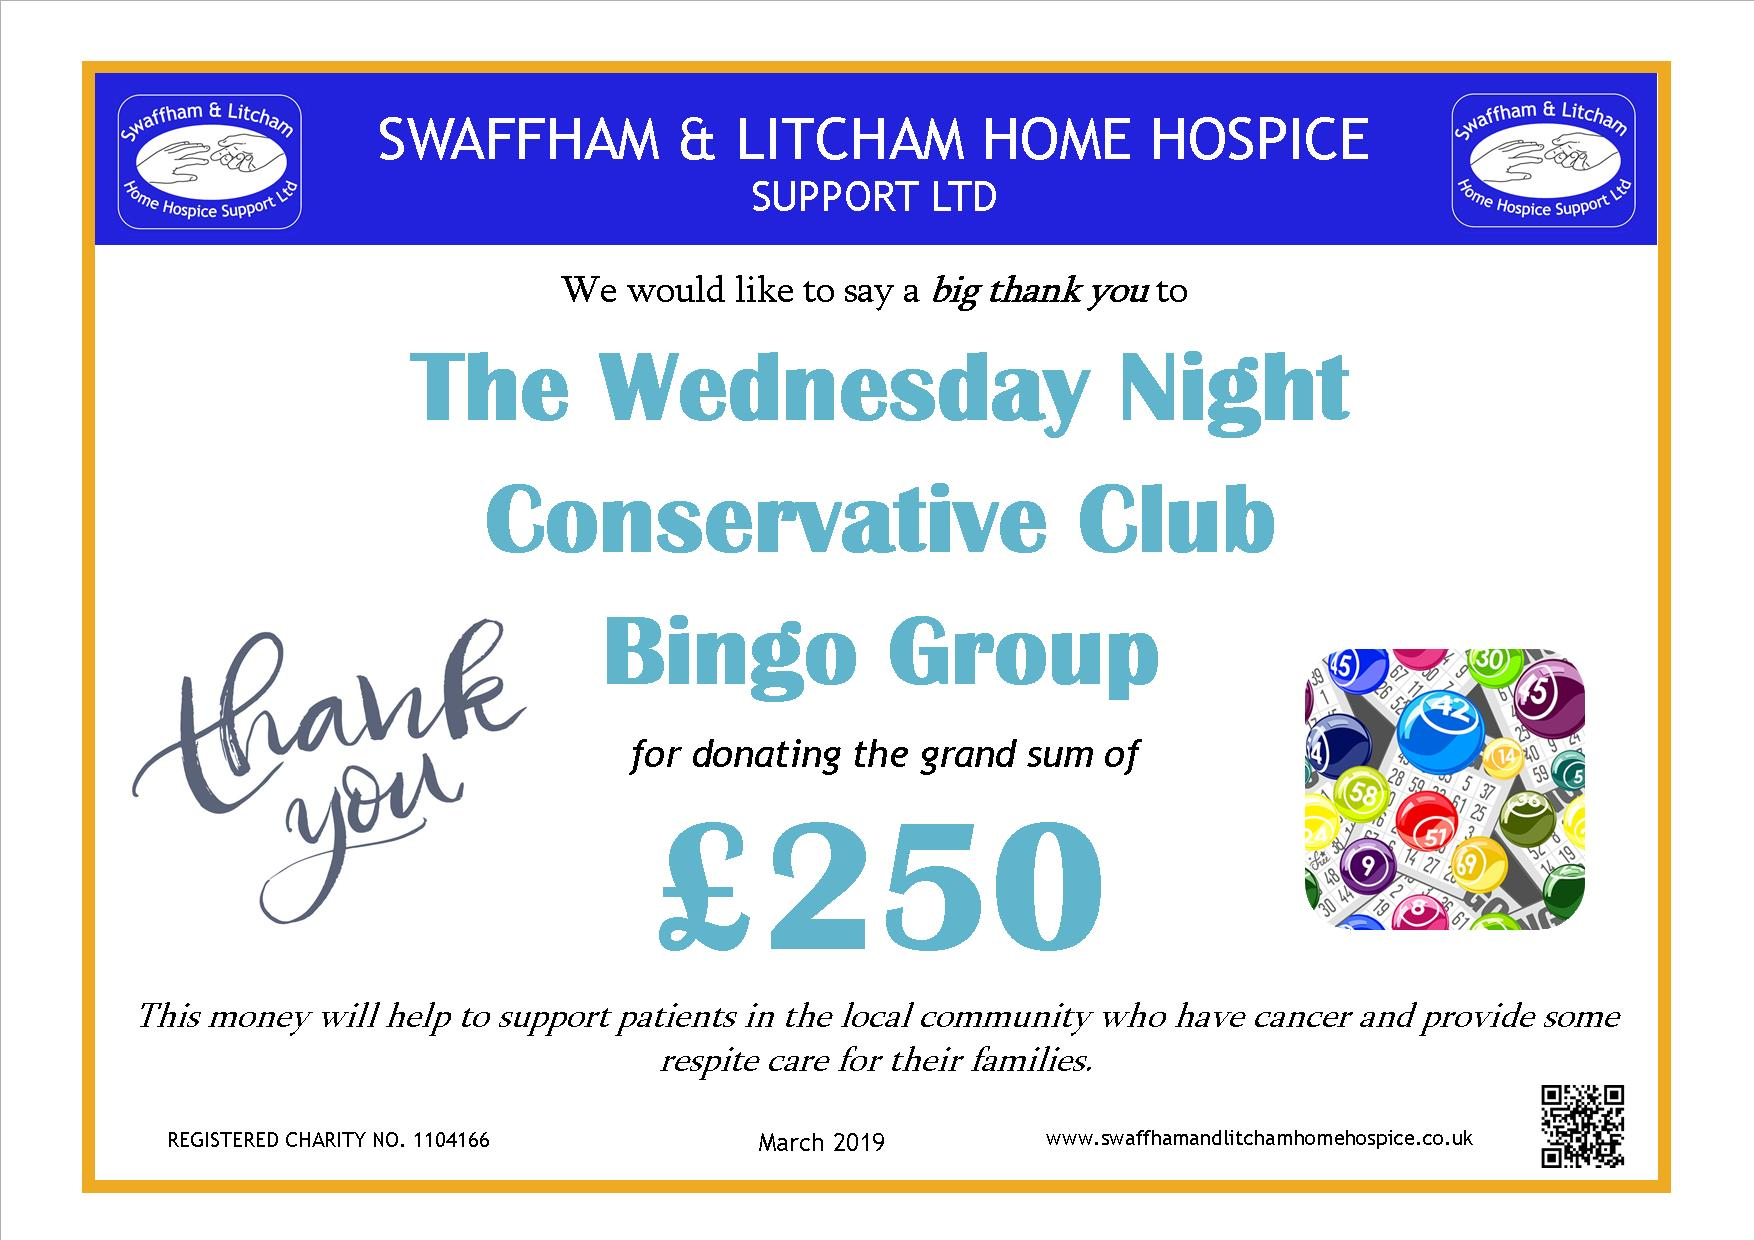 Money raised at the Wednesday Night Conservative Club Bingo Group, March 2019